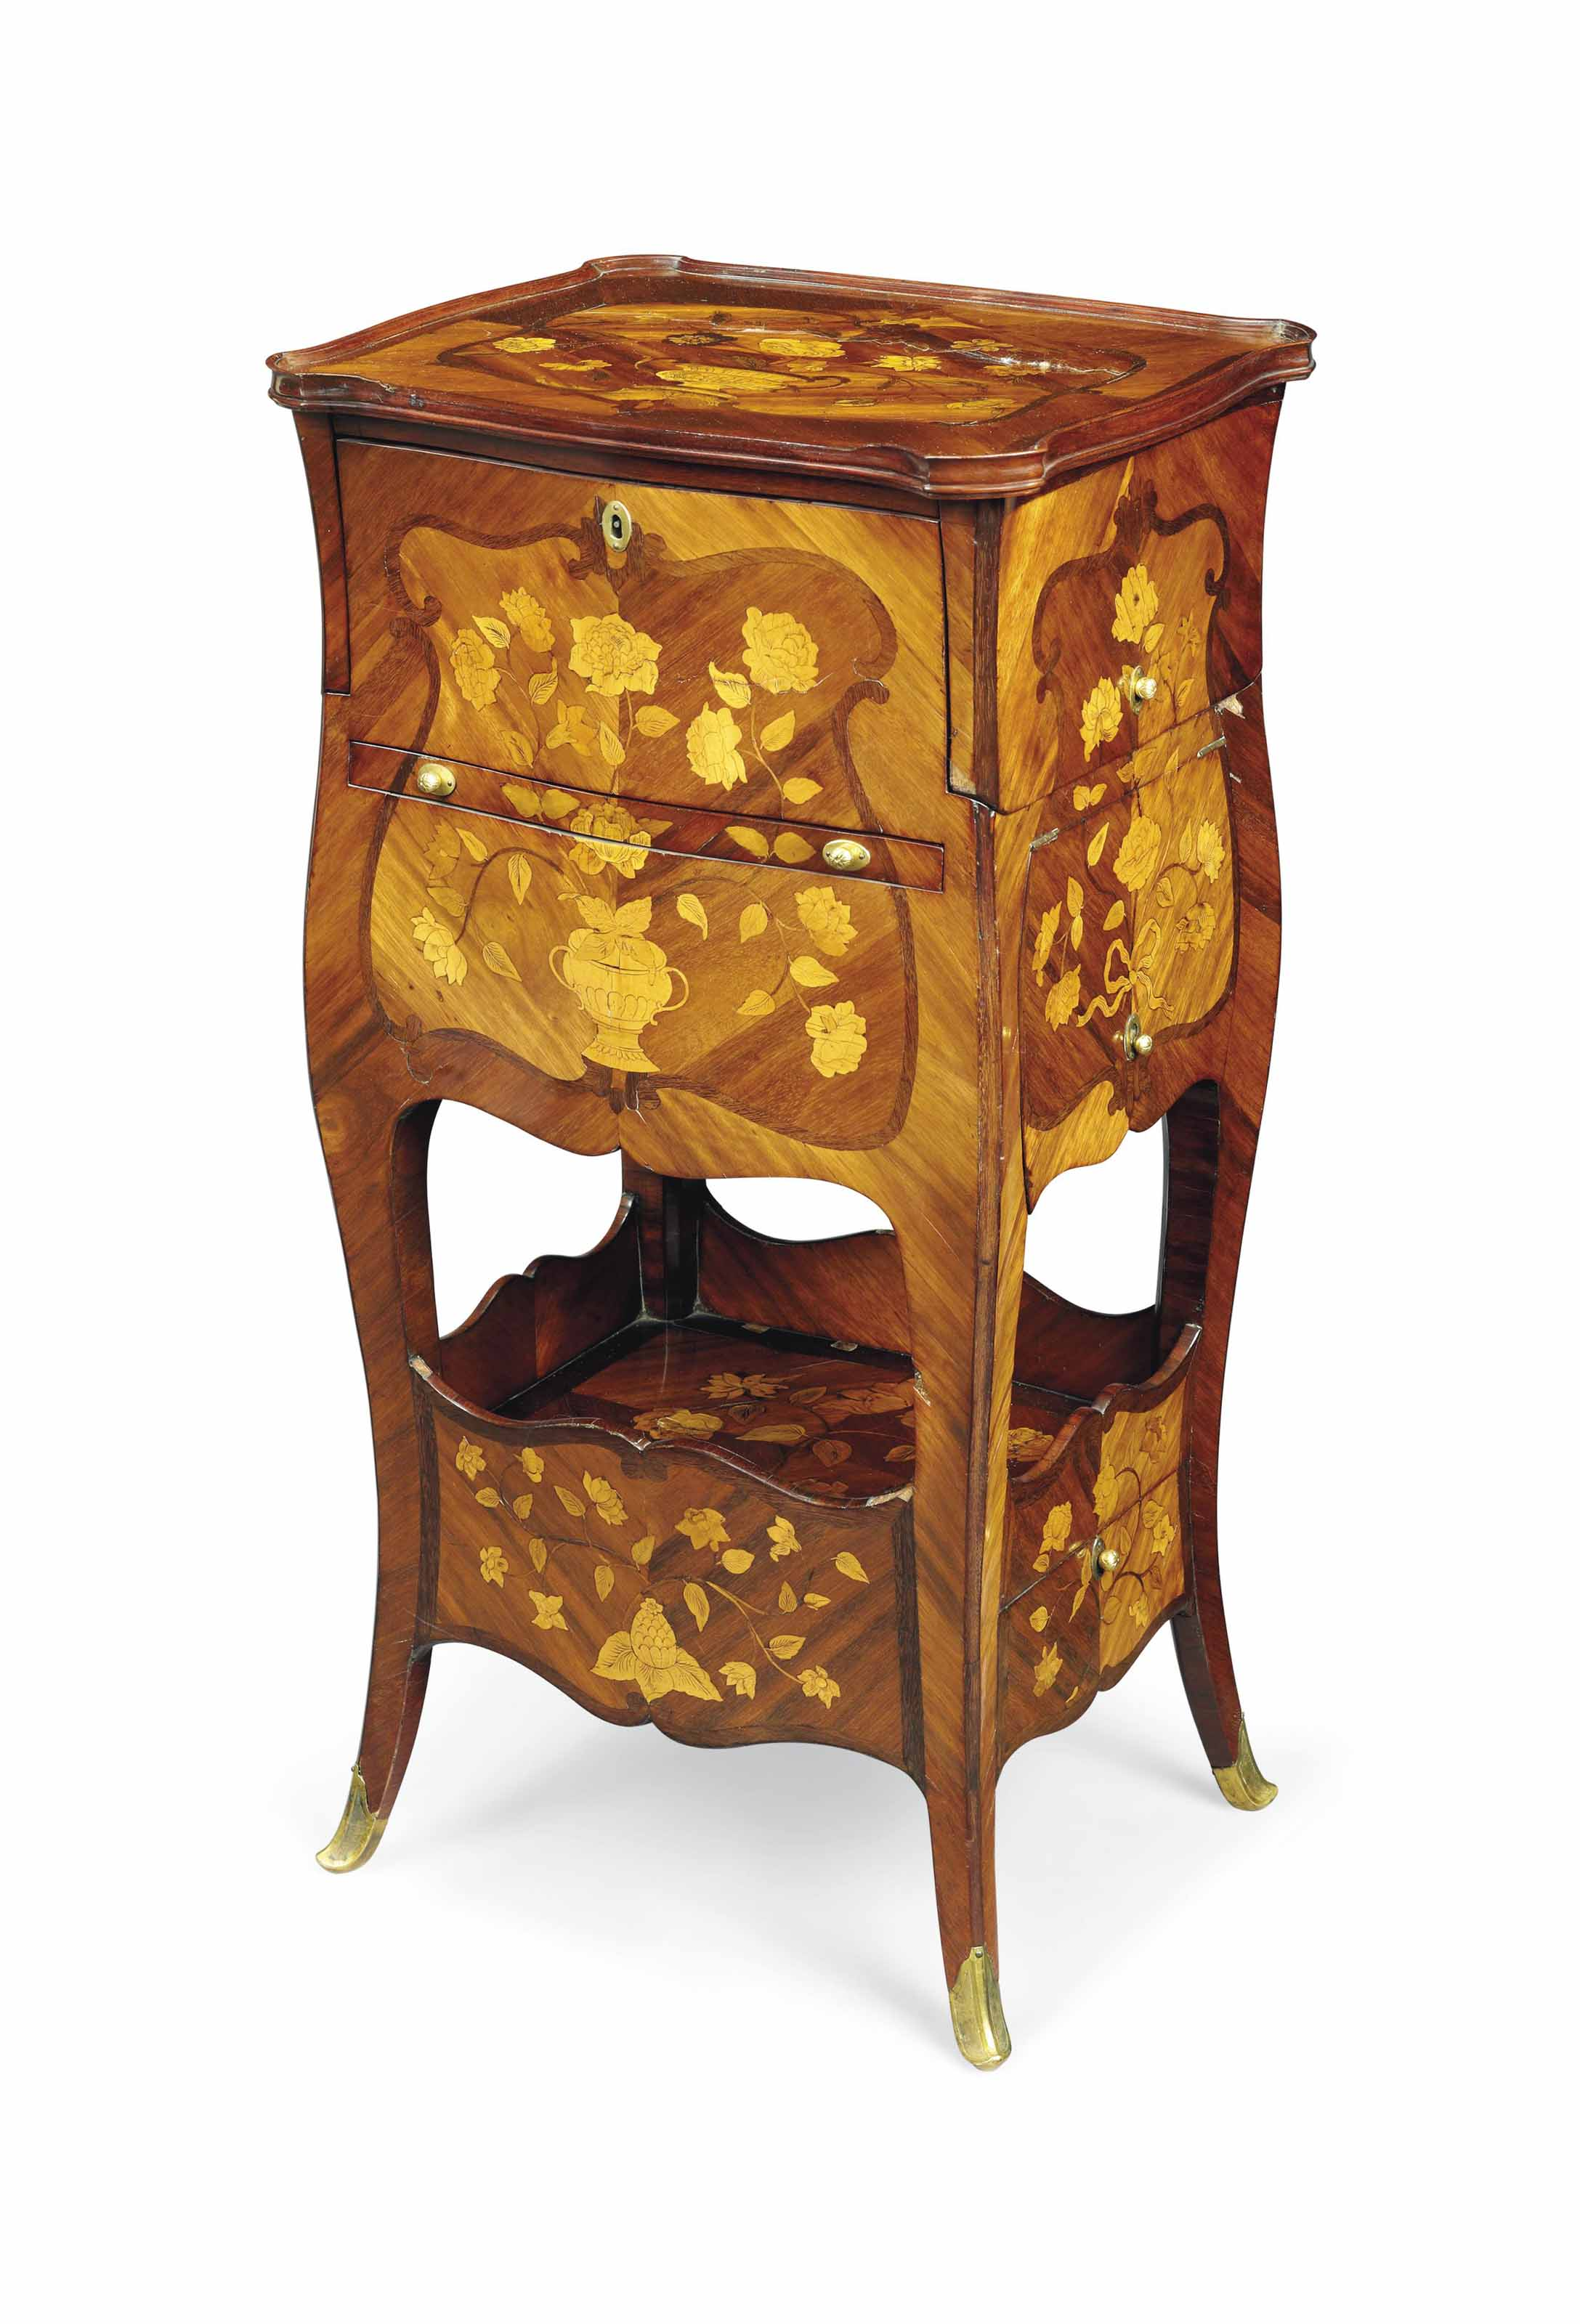 A LOUIS XV BOIS SATINÉ, AMARANTH, FRUITWOOD AND FLORAL MARQUETRY TABLE 'A TRANSFORMATION'